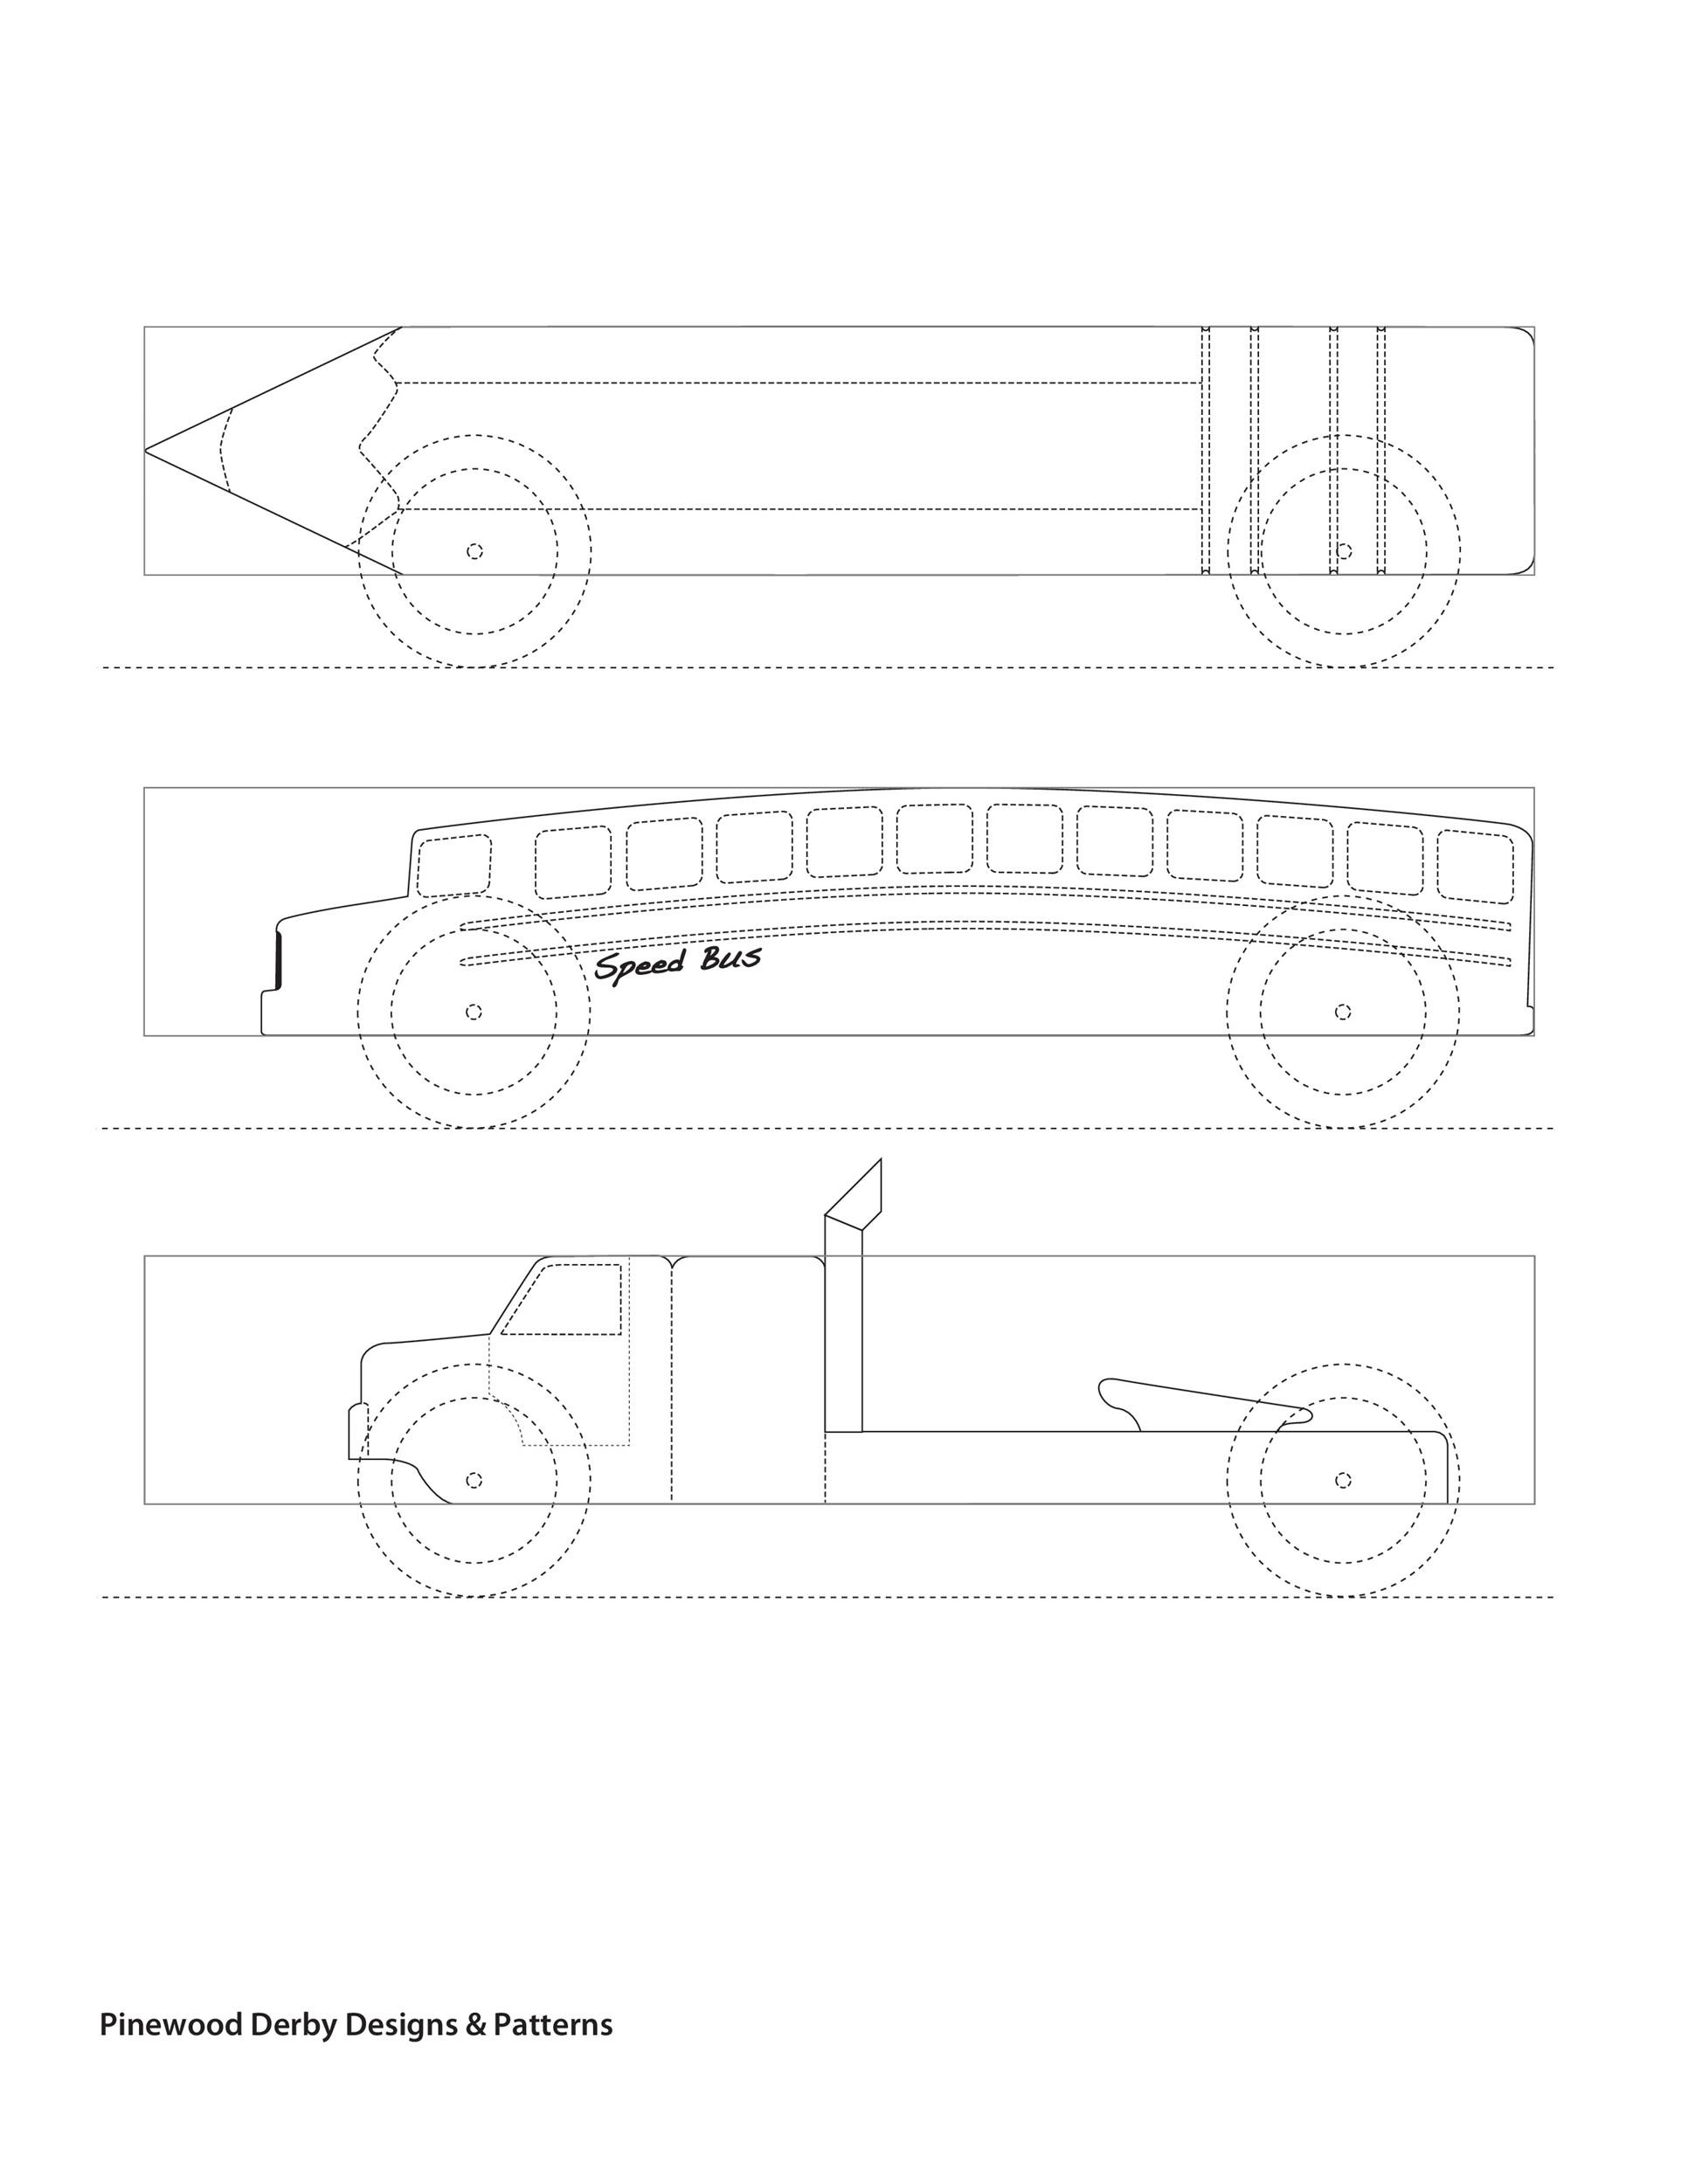 Free pinewood derby templates 35